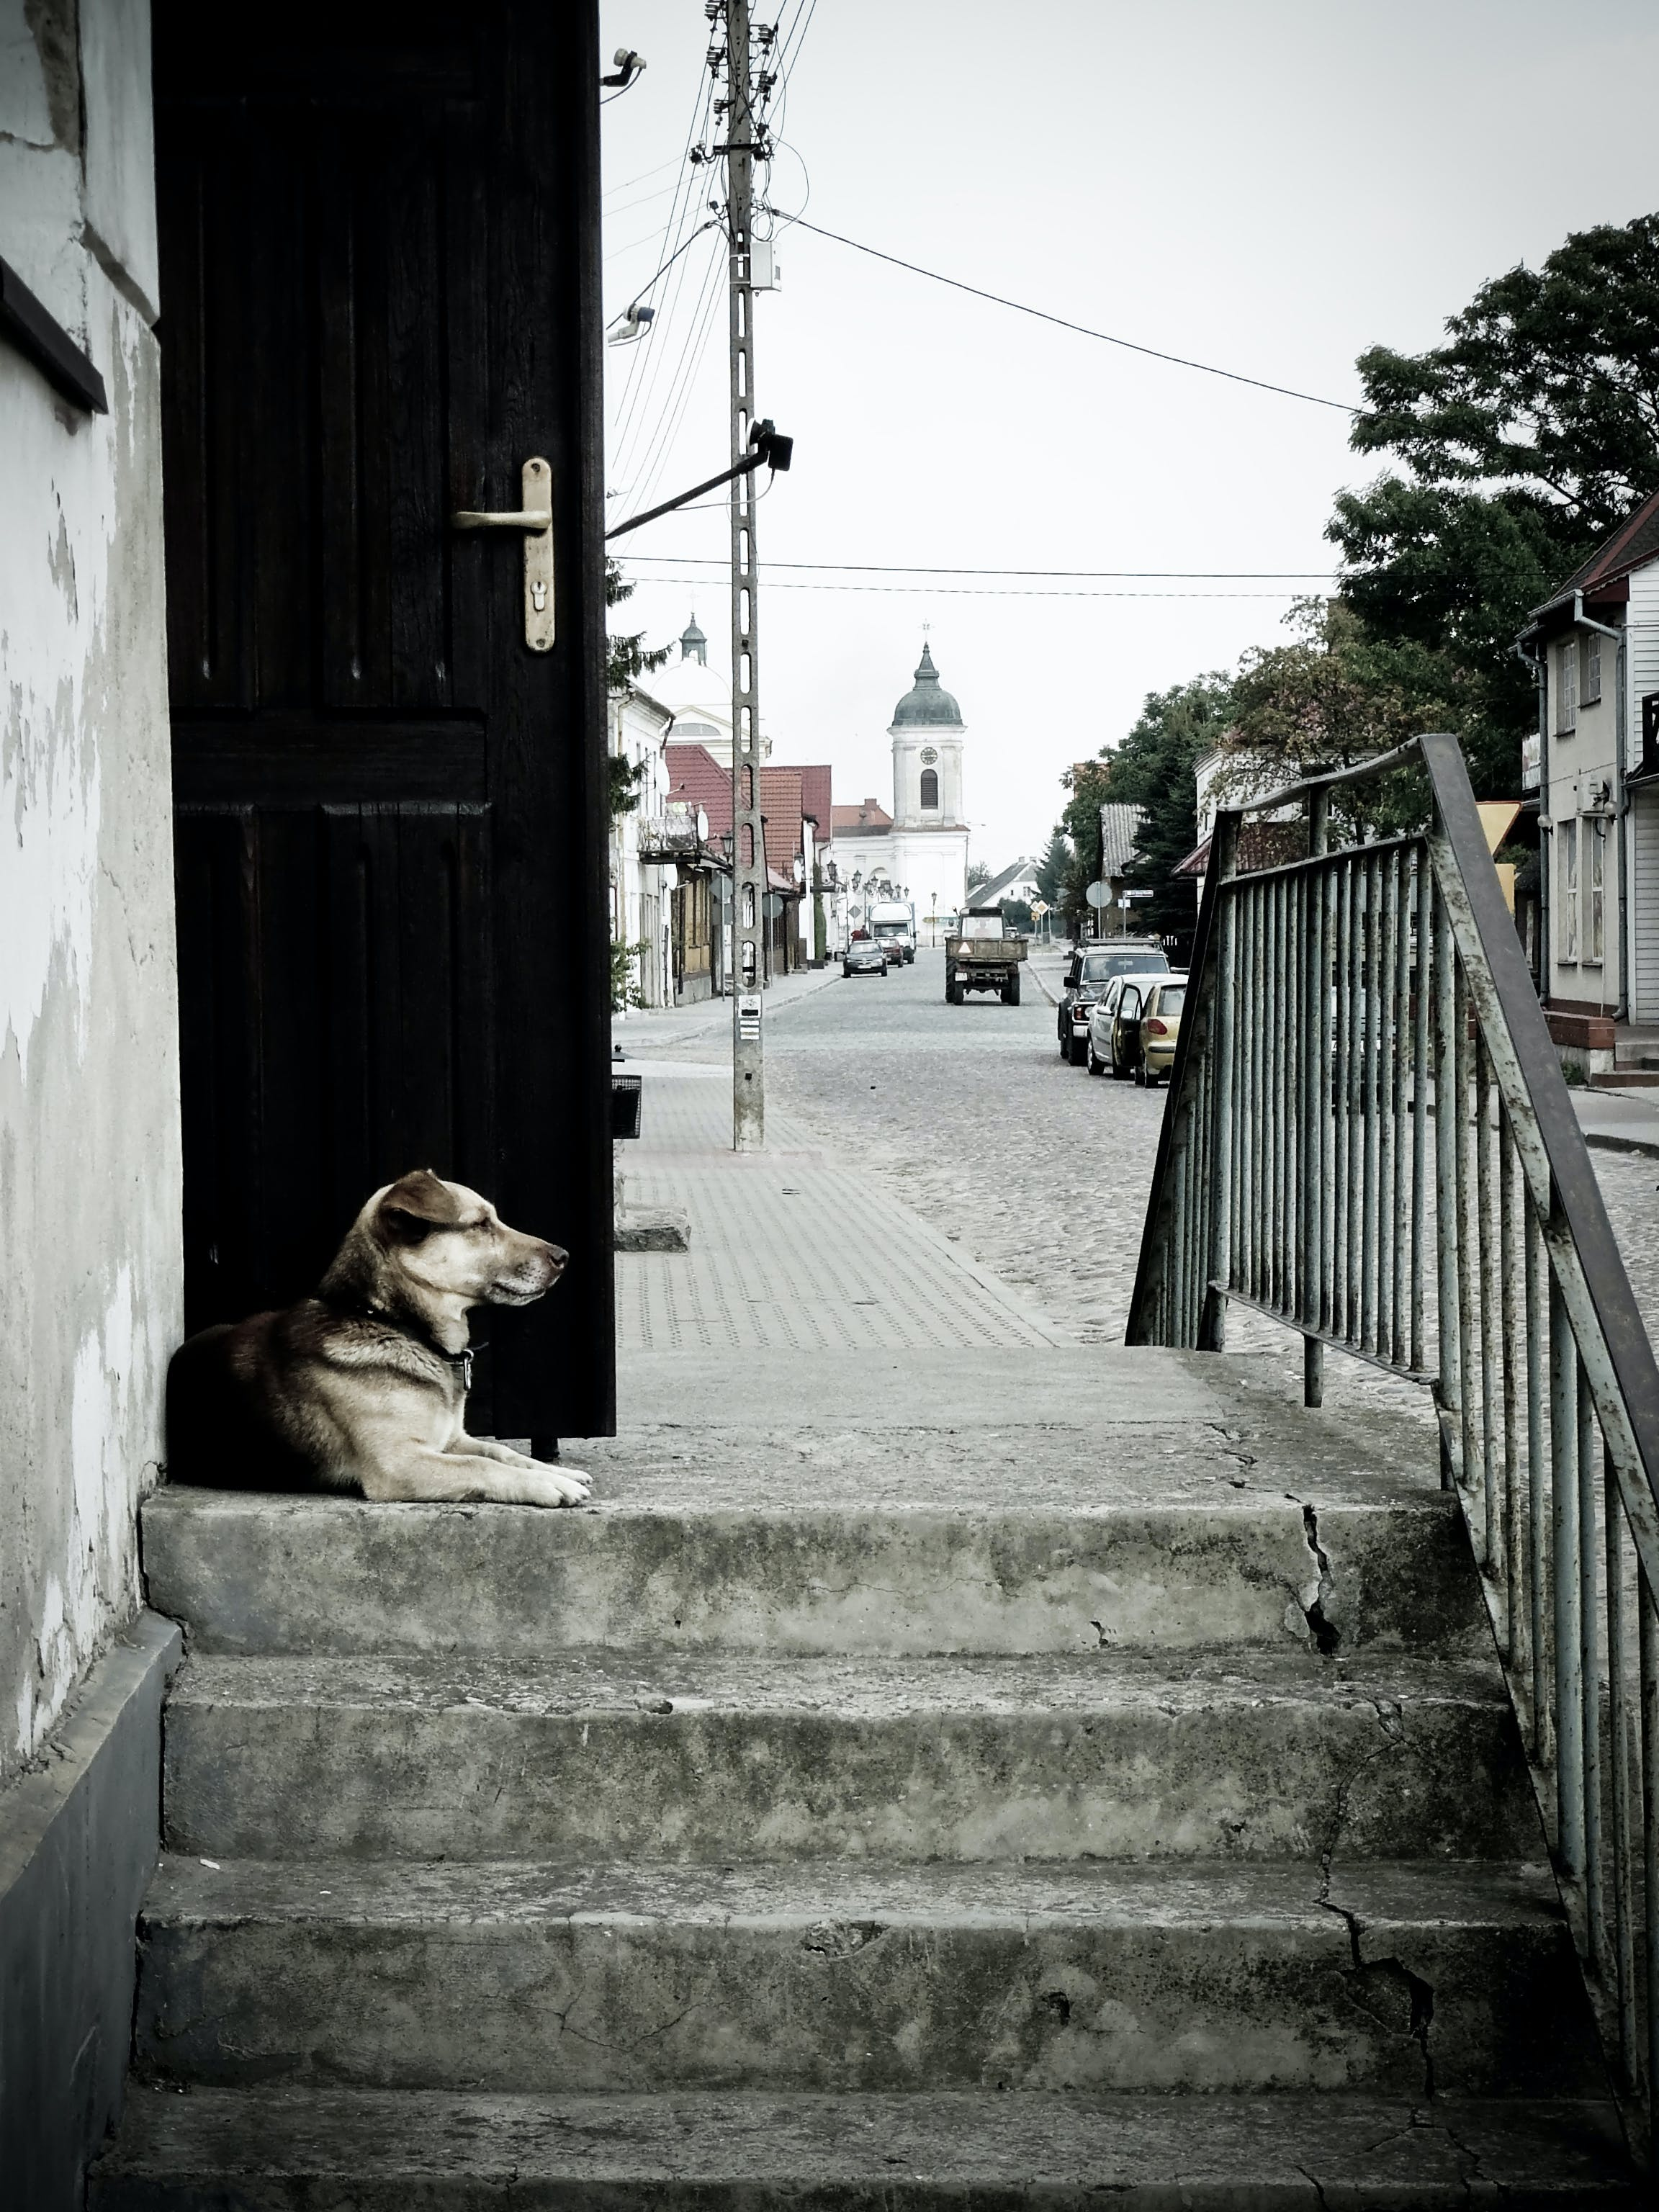 Free stock photo of street, dog, guard, watchdog